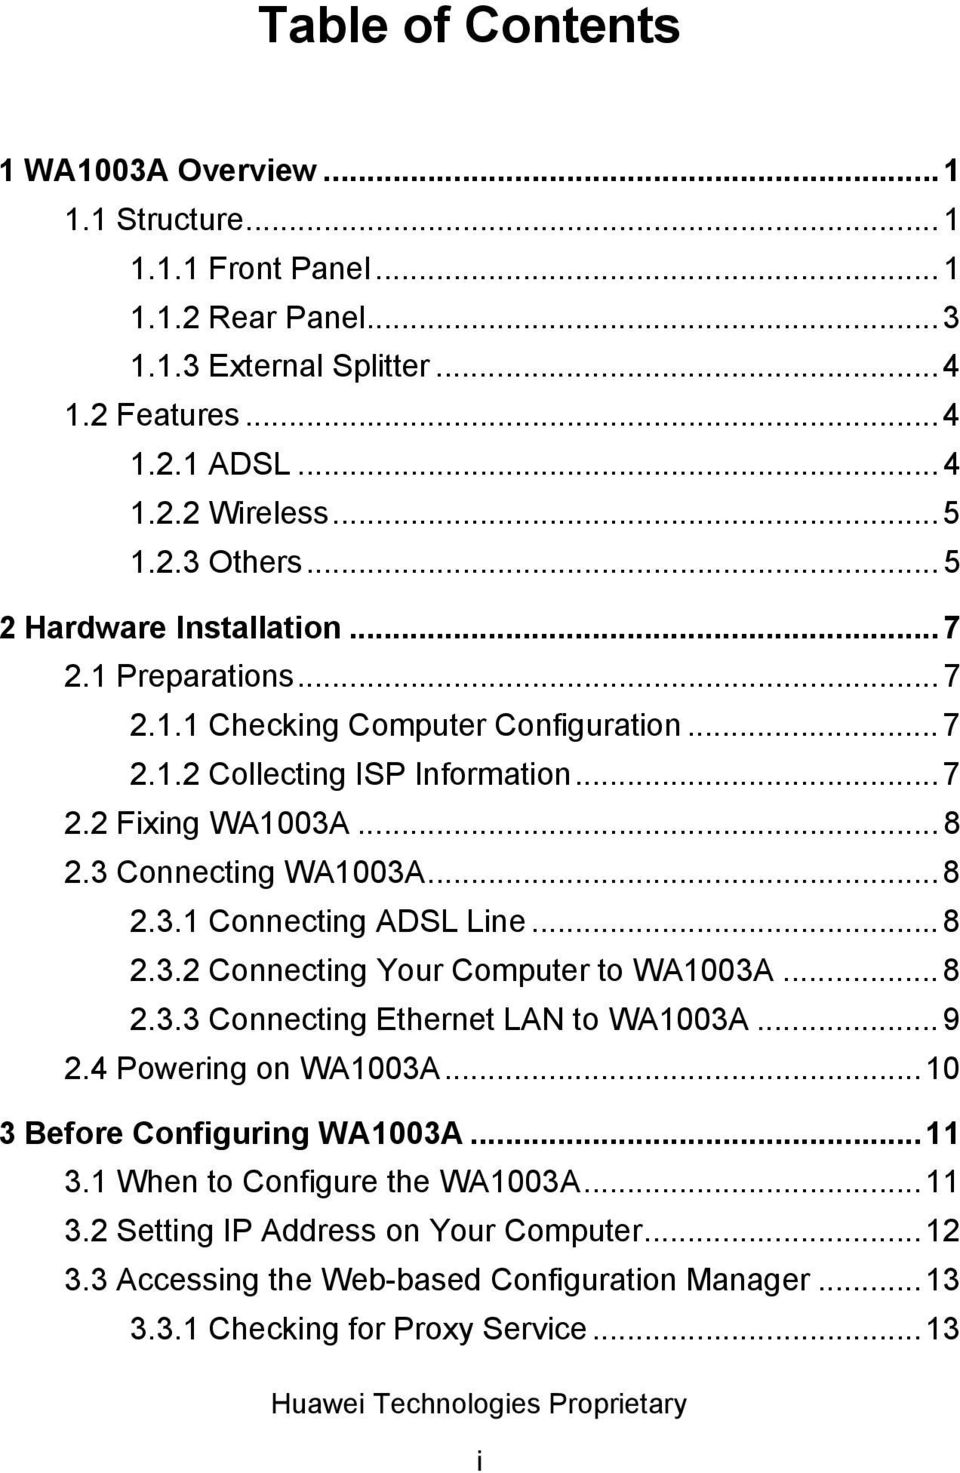 ..8 2.3.2 Connecting Your Computer to WA1003A...8 2.3.3 Connecting Ethernet LAN to WA1003A...9 2.4 Powering on WA1003A...10 3 Before Configuring WA1003A...11 3.